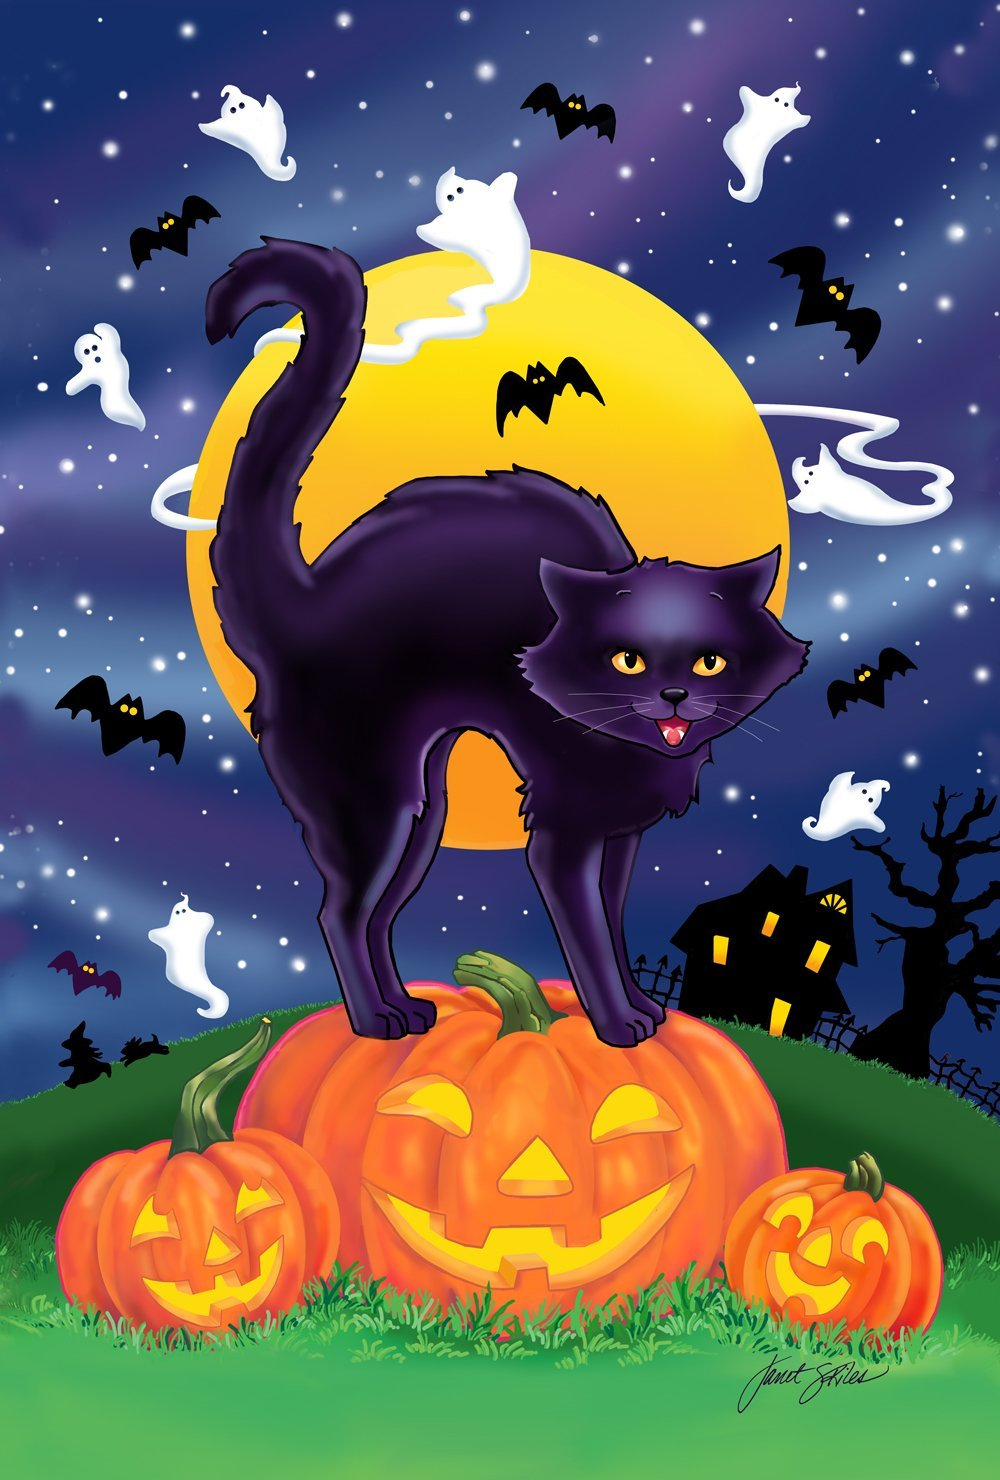 Toland Home Garden Black Cat 12.5 x 18 Inch Decorative Halloween Kitty Pumpkin Garden Flag